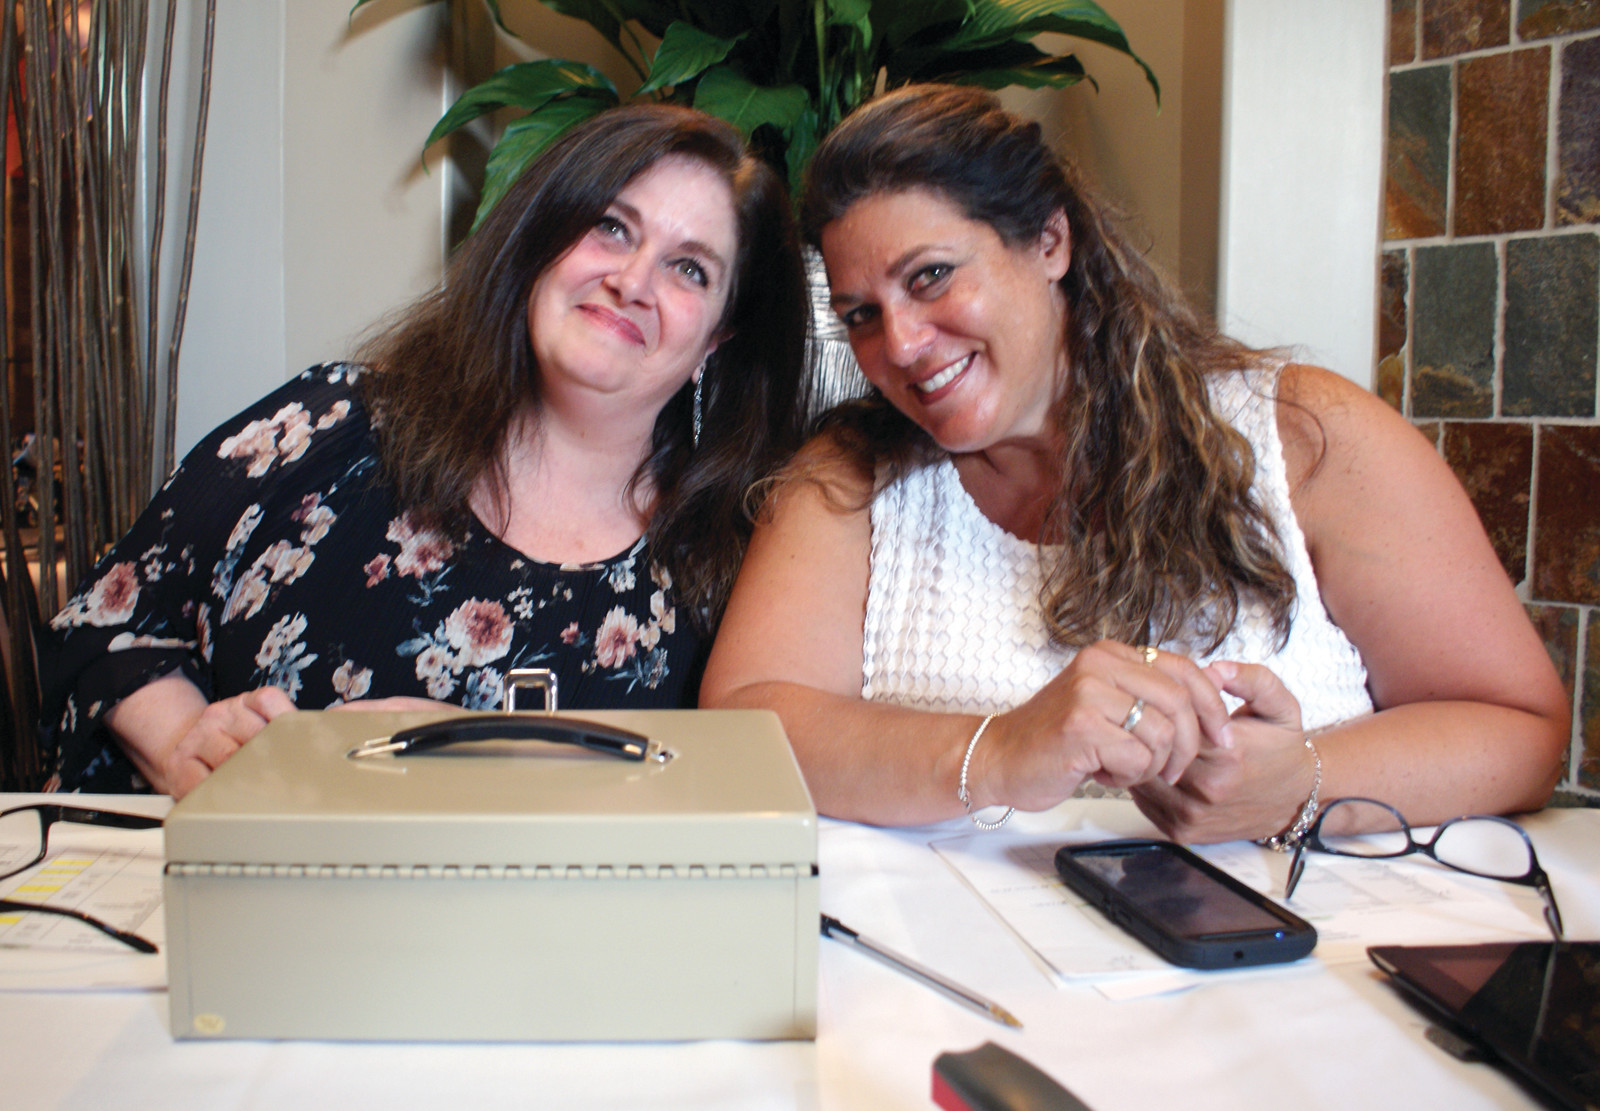 AT THE DOOR: Greeting guests to the Eric Medeiros Memorial Foundation at Spain Restaurant in Cranston were Joanne Marzilli and Maria Manzi, both from Cranston.